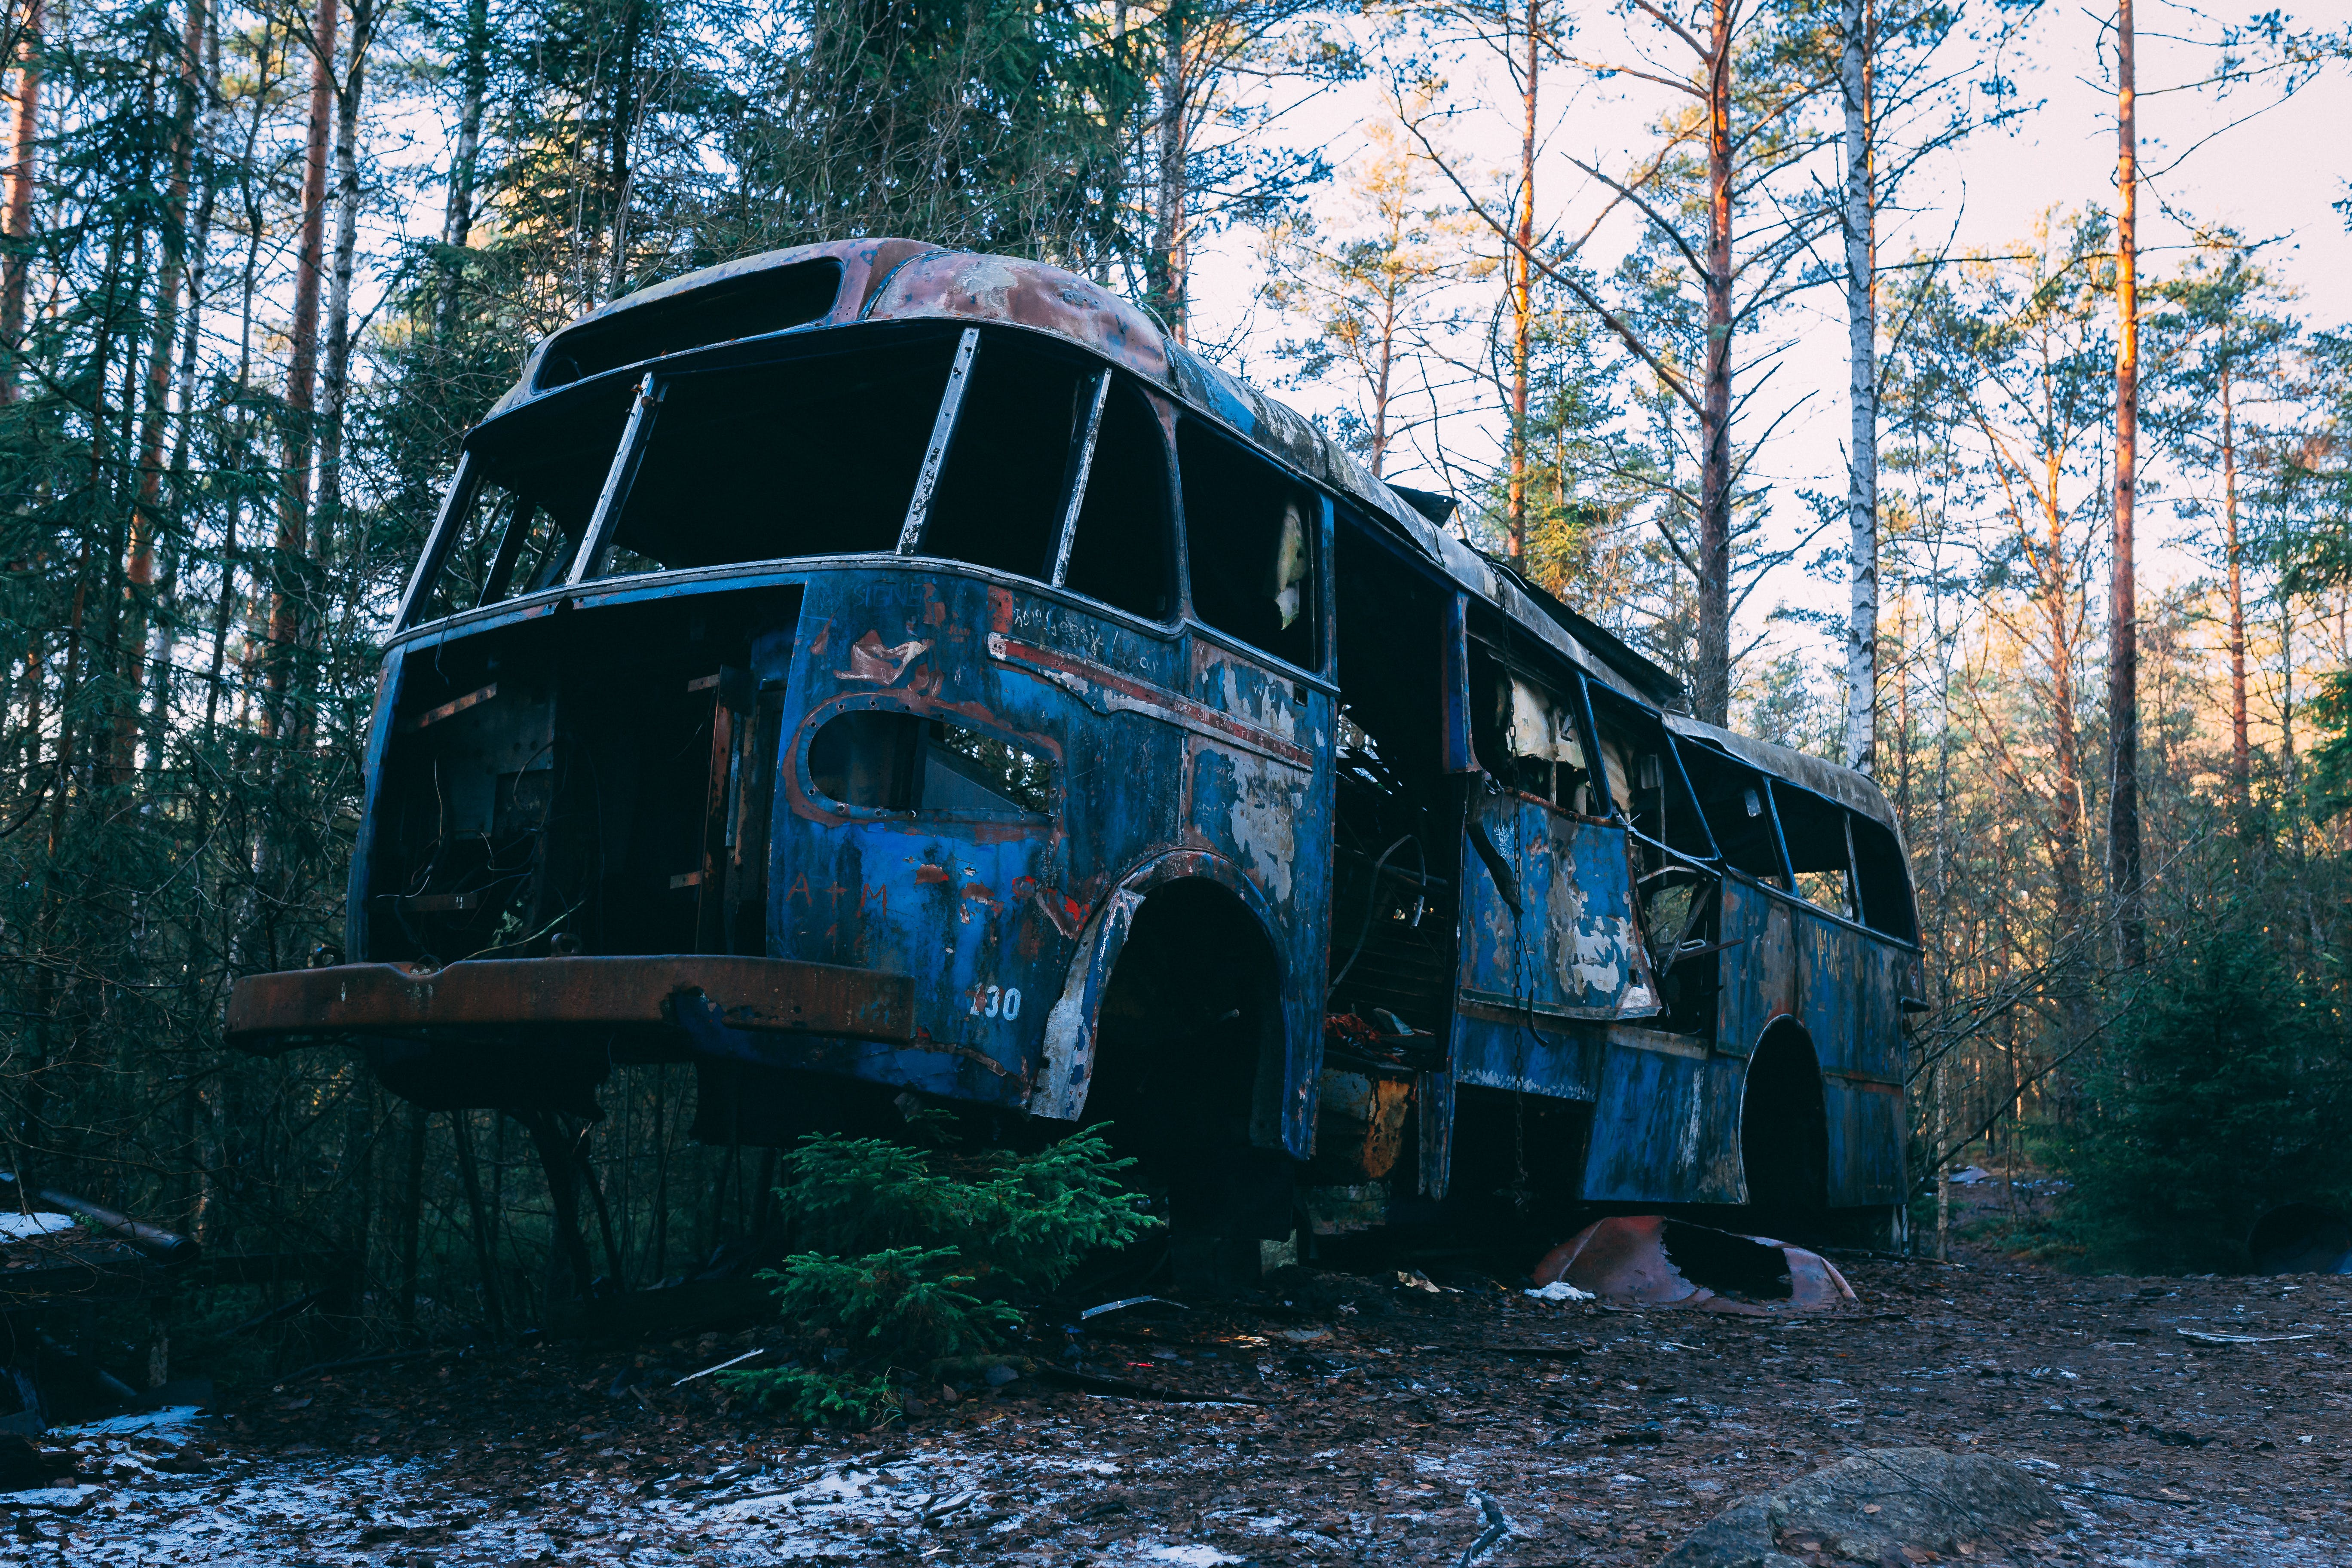 Wrecked Blue Bus In The Woods